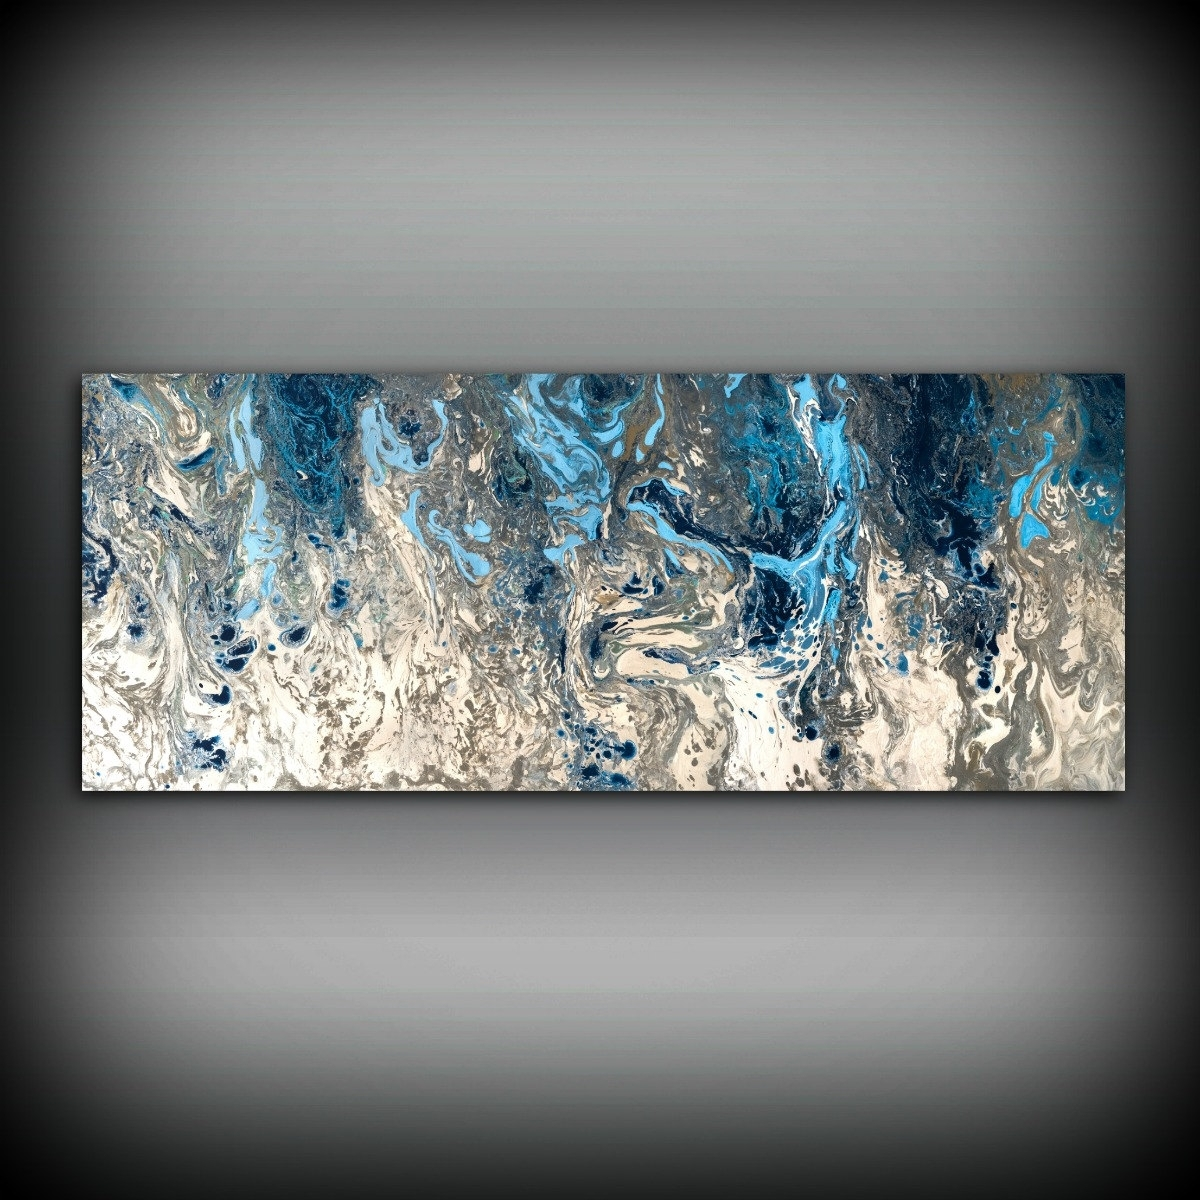 Original Painting, Navy Blue And Gray Painting Abstract Painting pertaining to Most Recent Abstract Art Wall Hangings